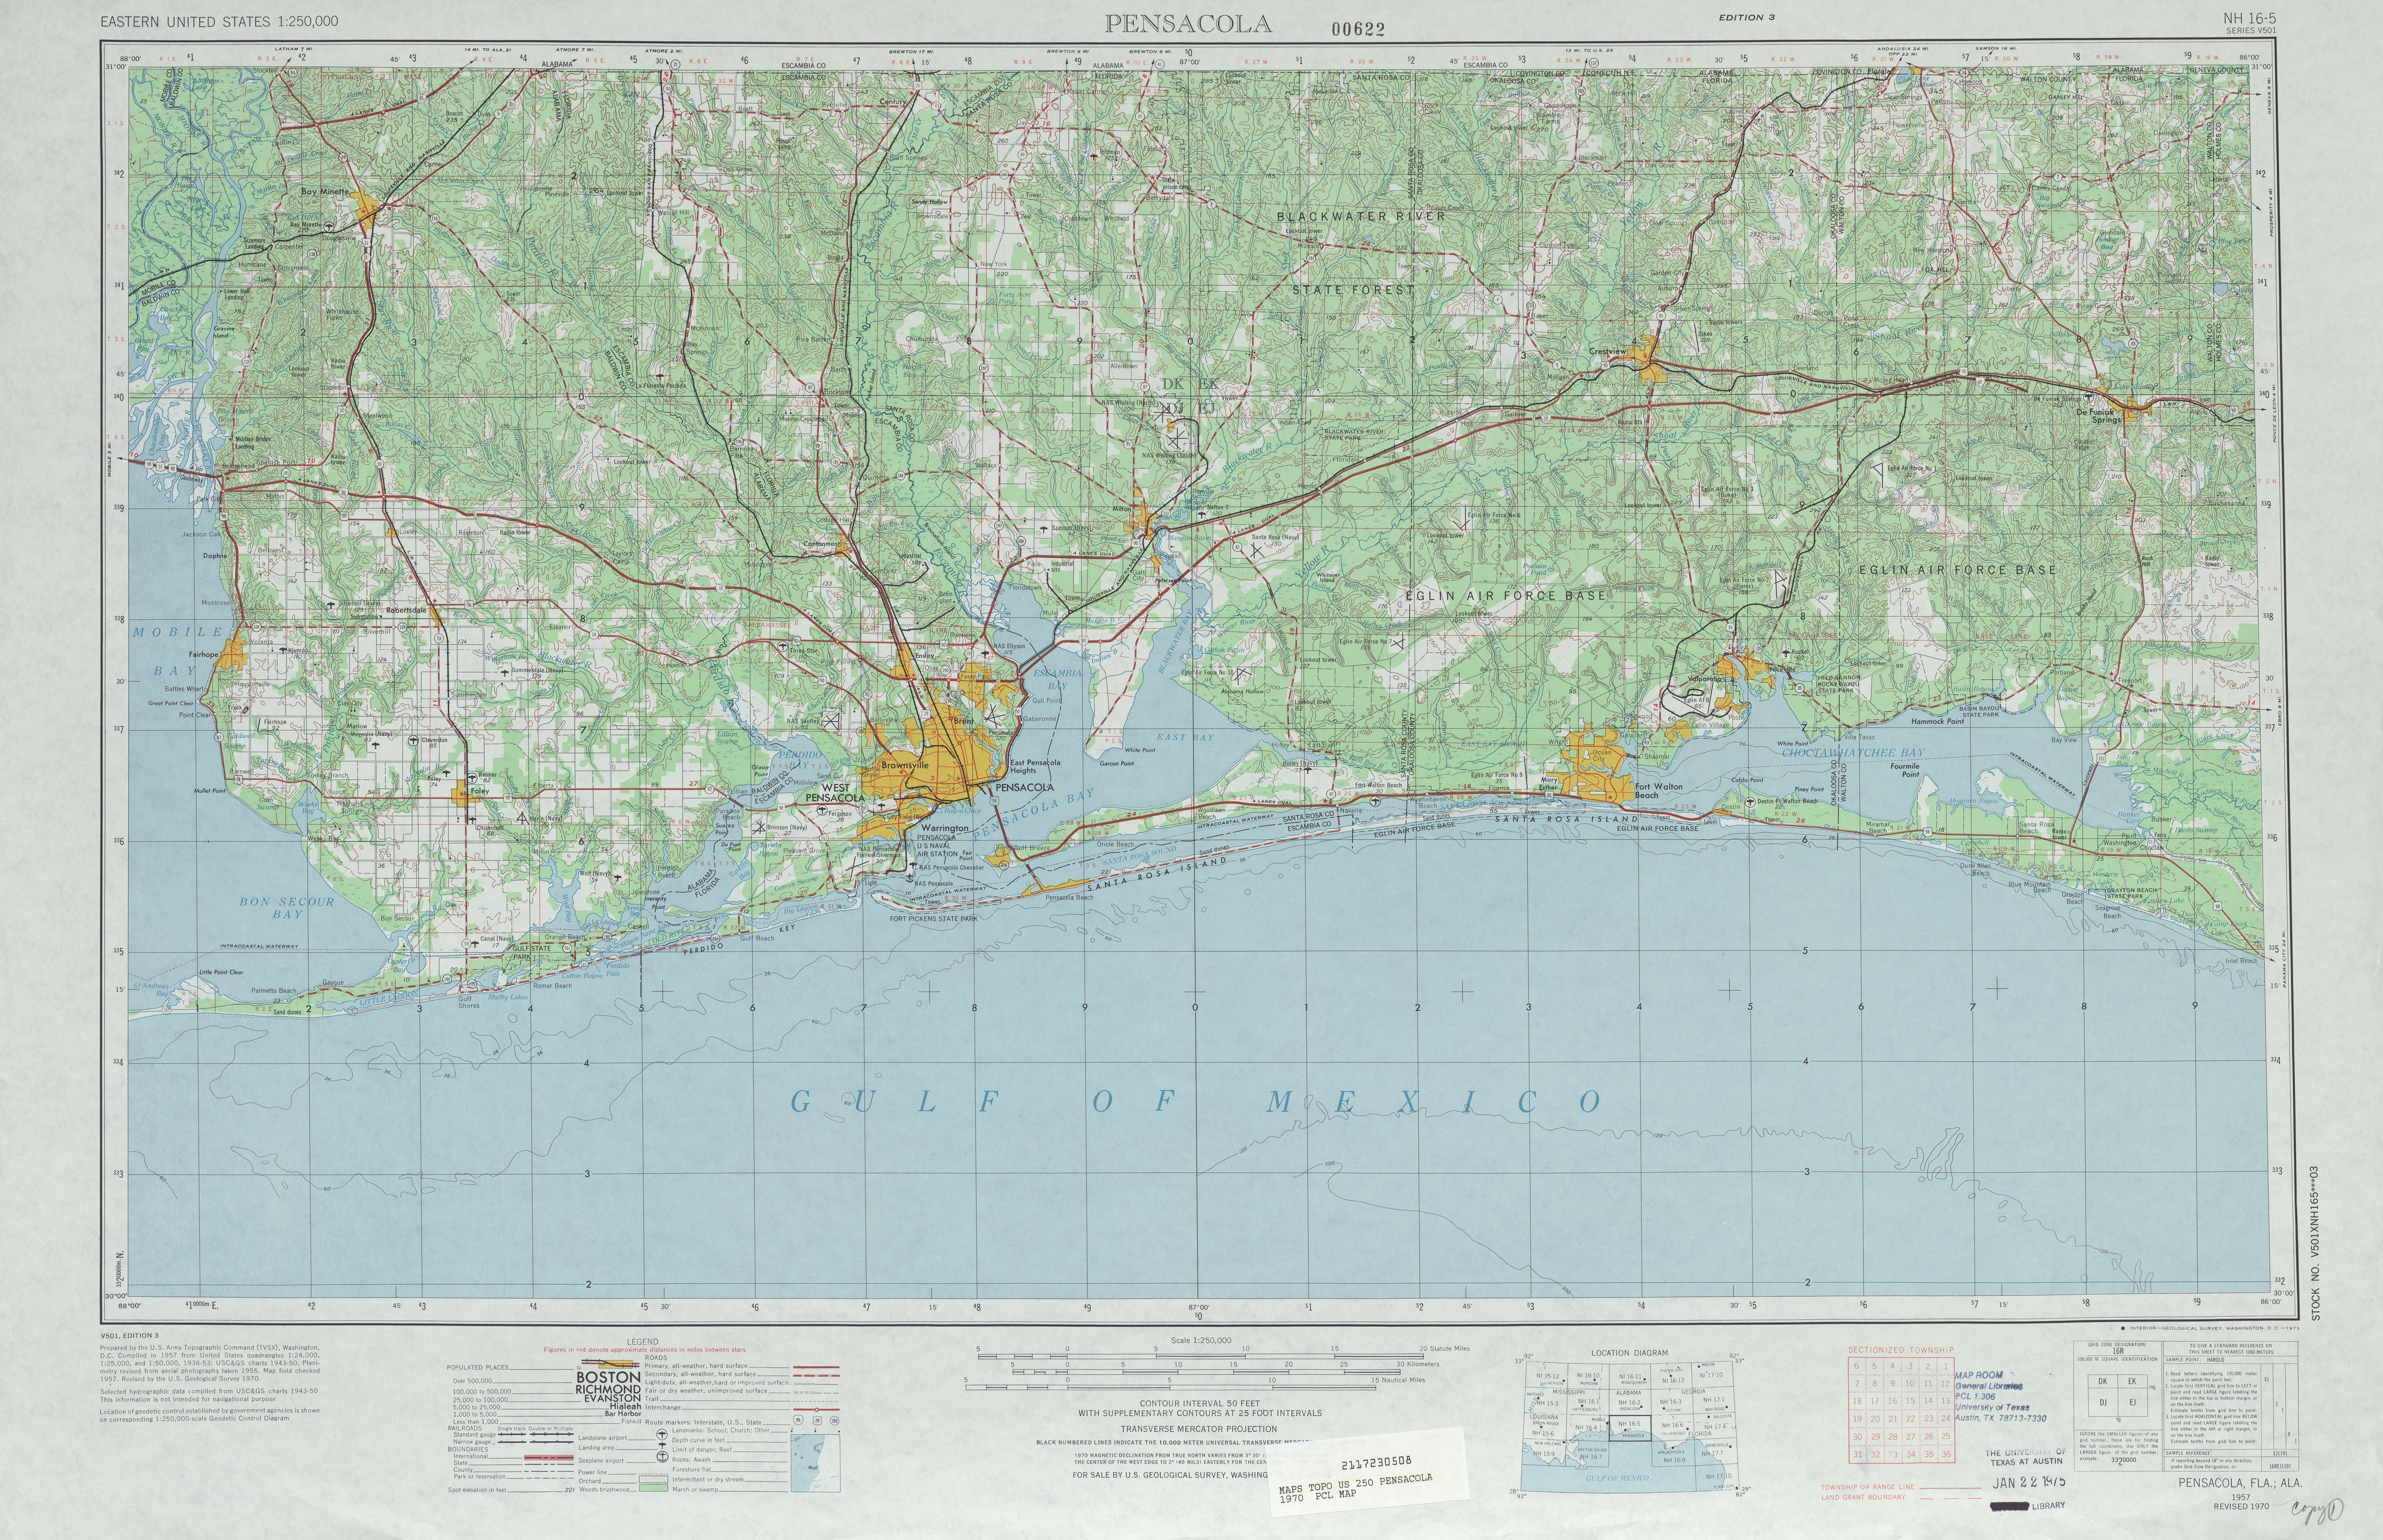 Southwest USA Topo Map Nevada Mappery US Topo Maps Free Android - Southwest us topographic map